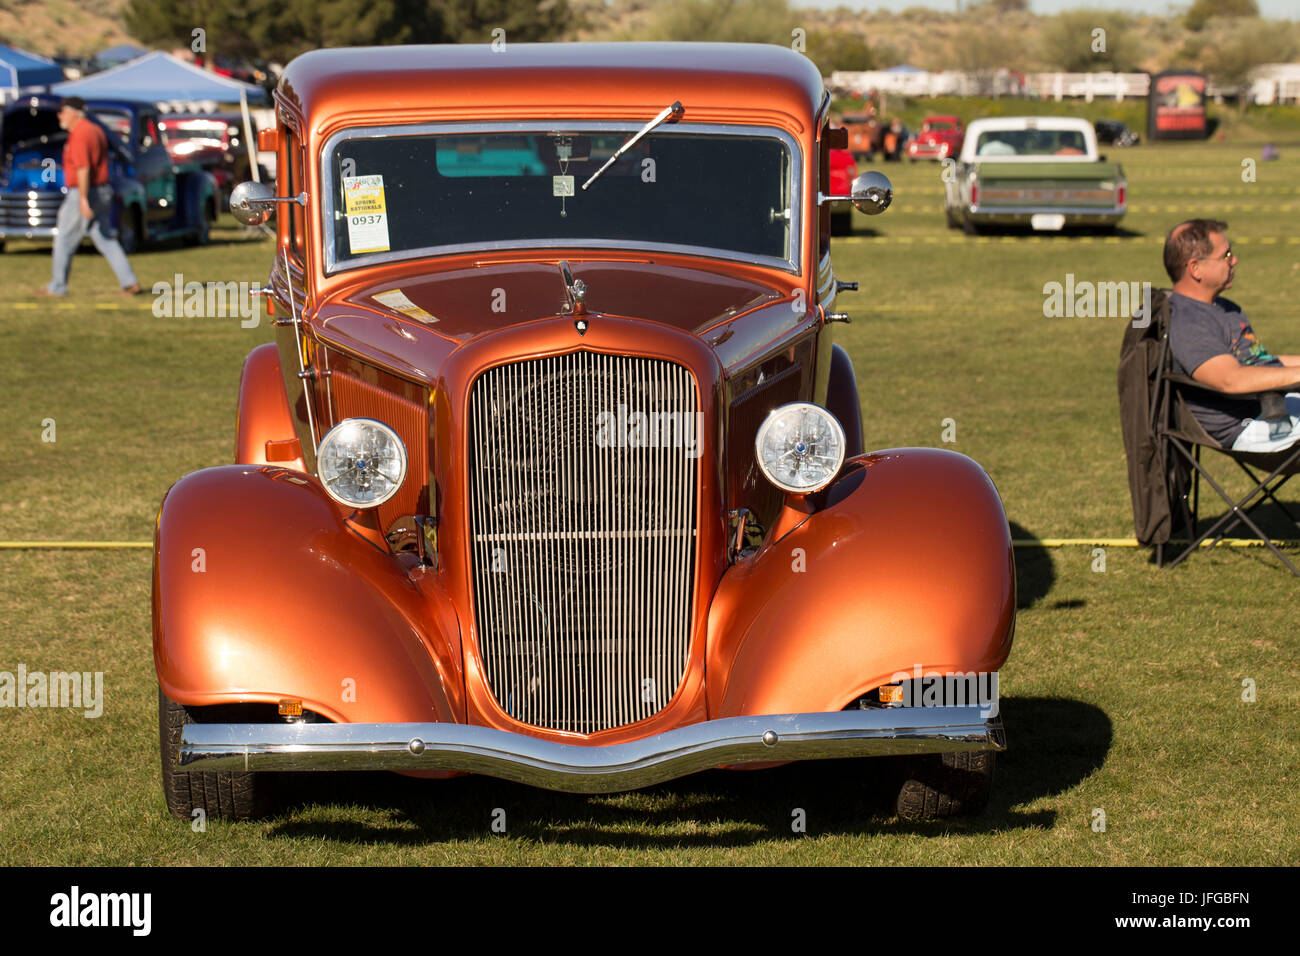 Scottsdale Car Show Stock Photo Alamy - Scottsdale classic car show